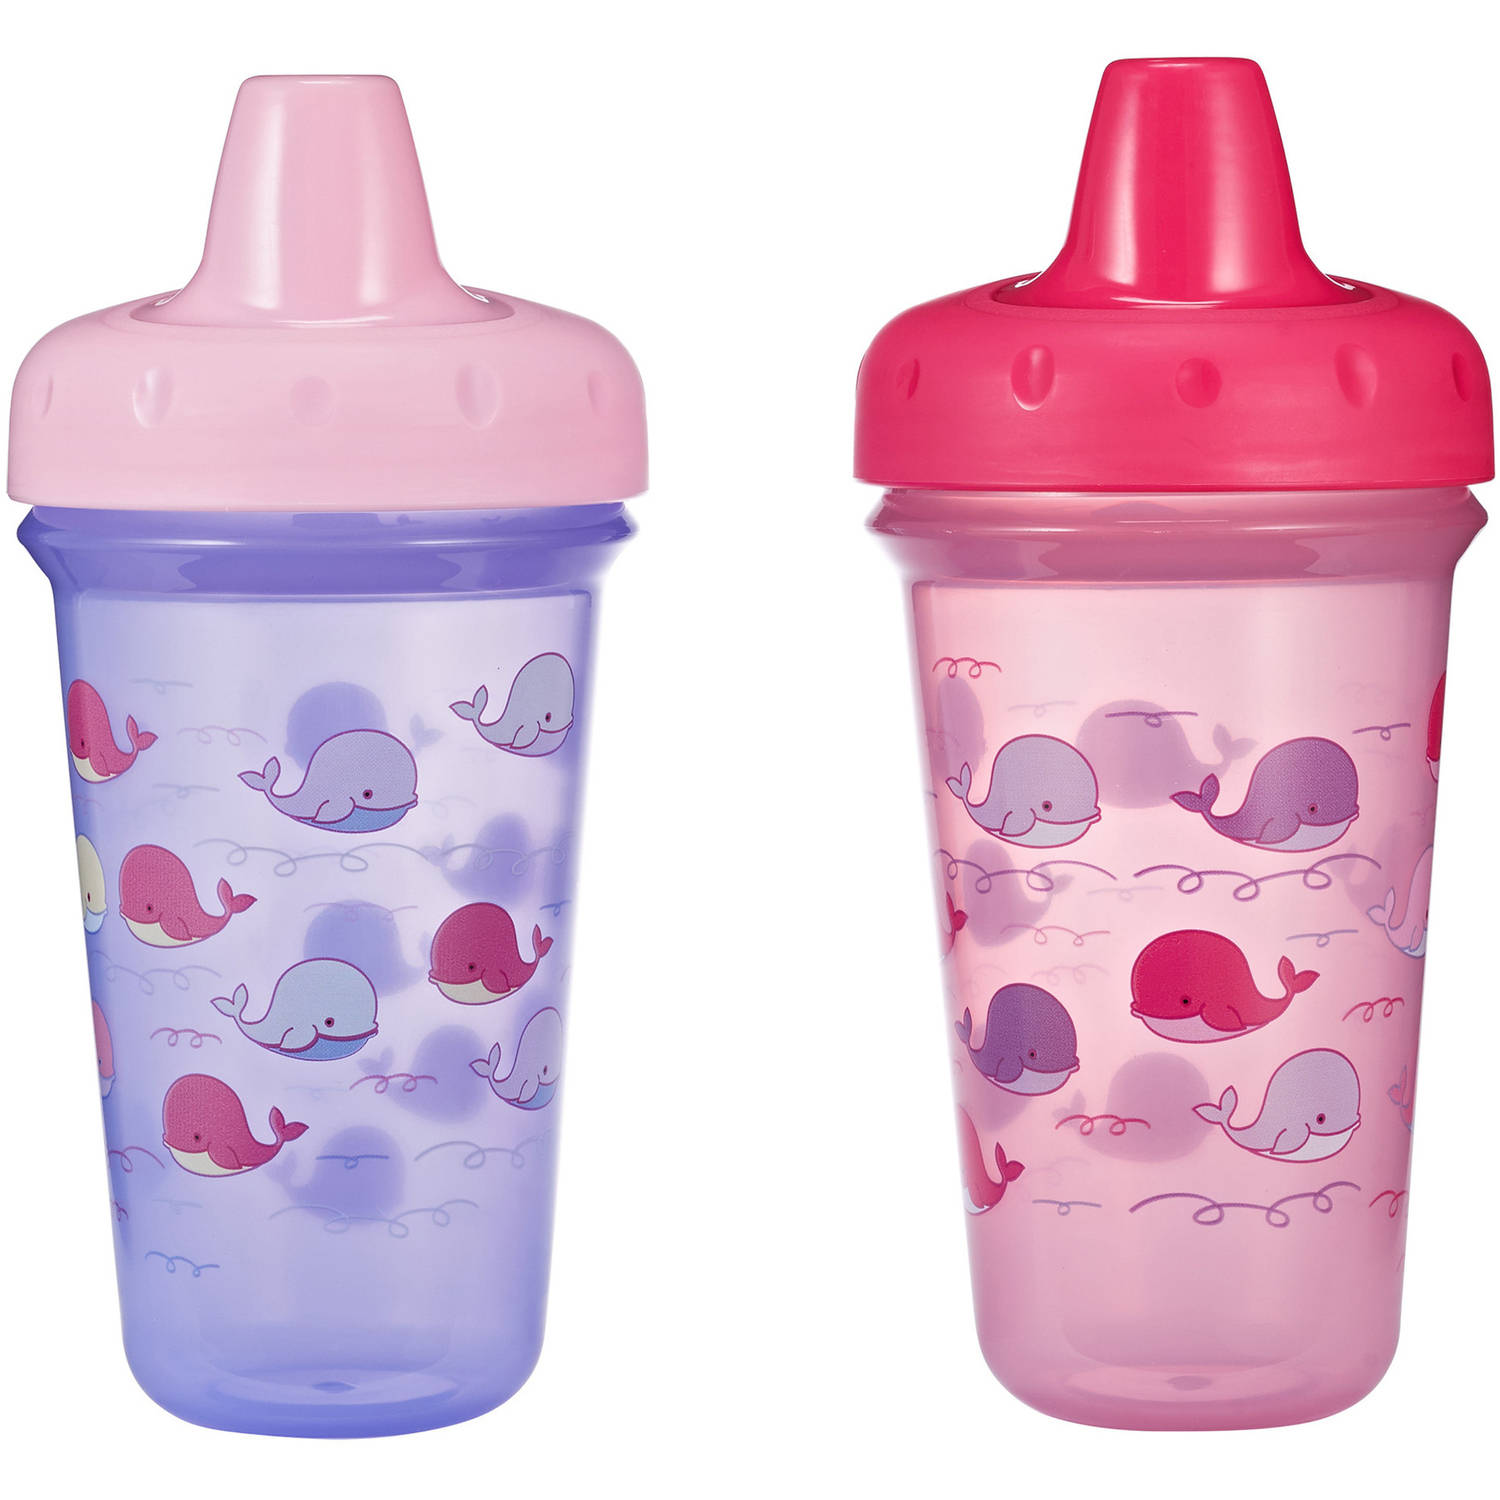 The First Years Stackable Hard Spout Cup